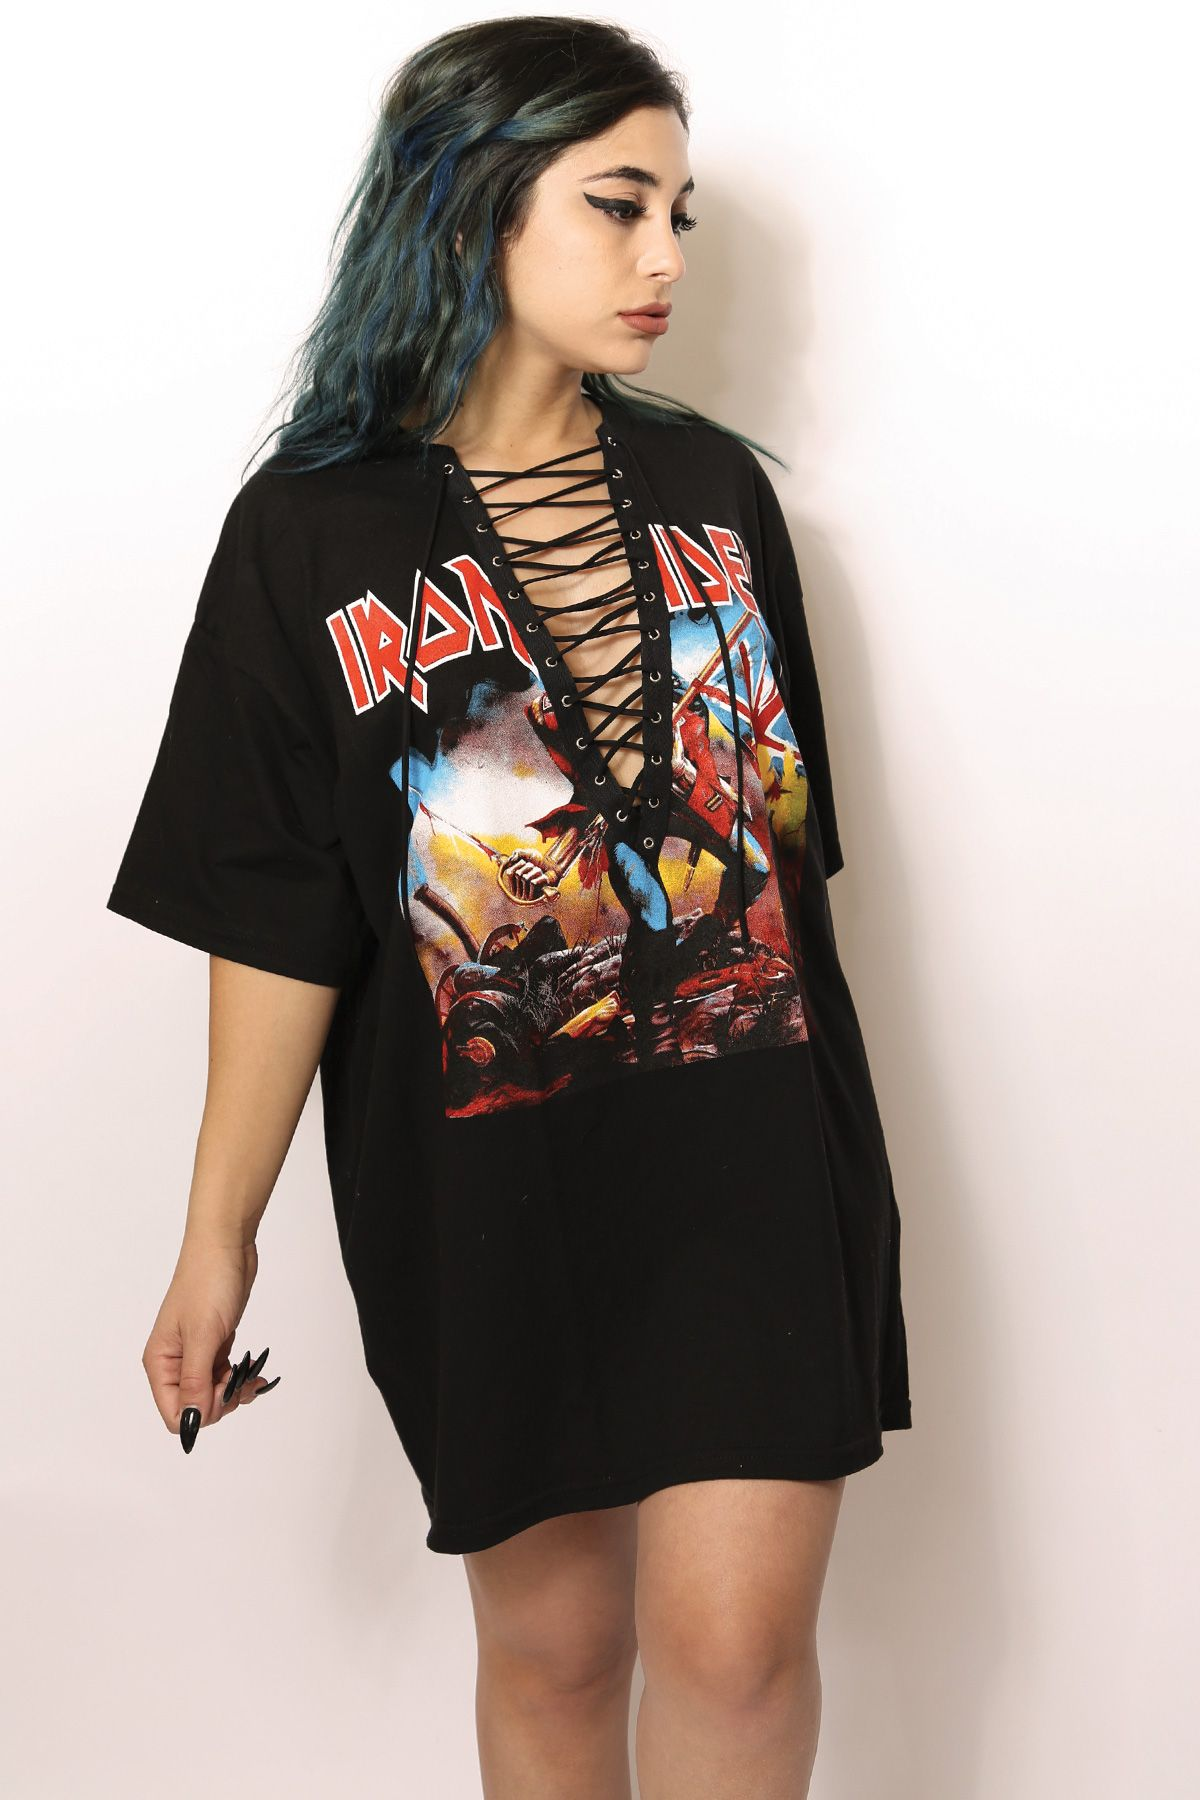 Black t shirt with lace - Iron Maiden Lace Up T Shirt Dress Pinterest Beth Evans